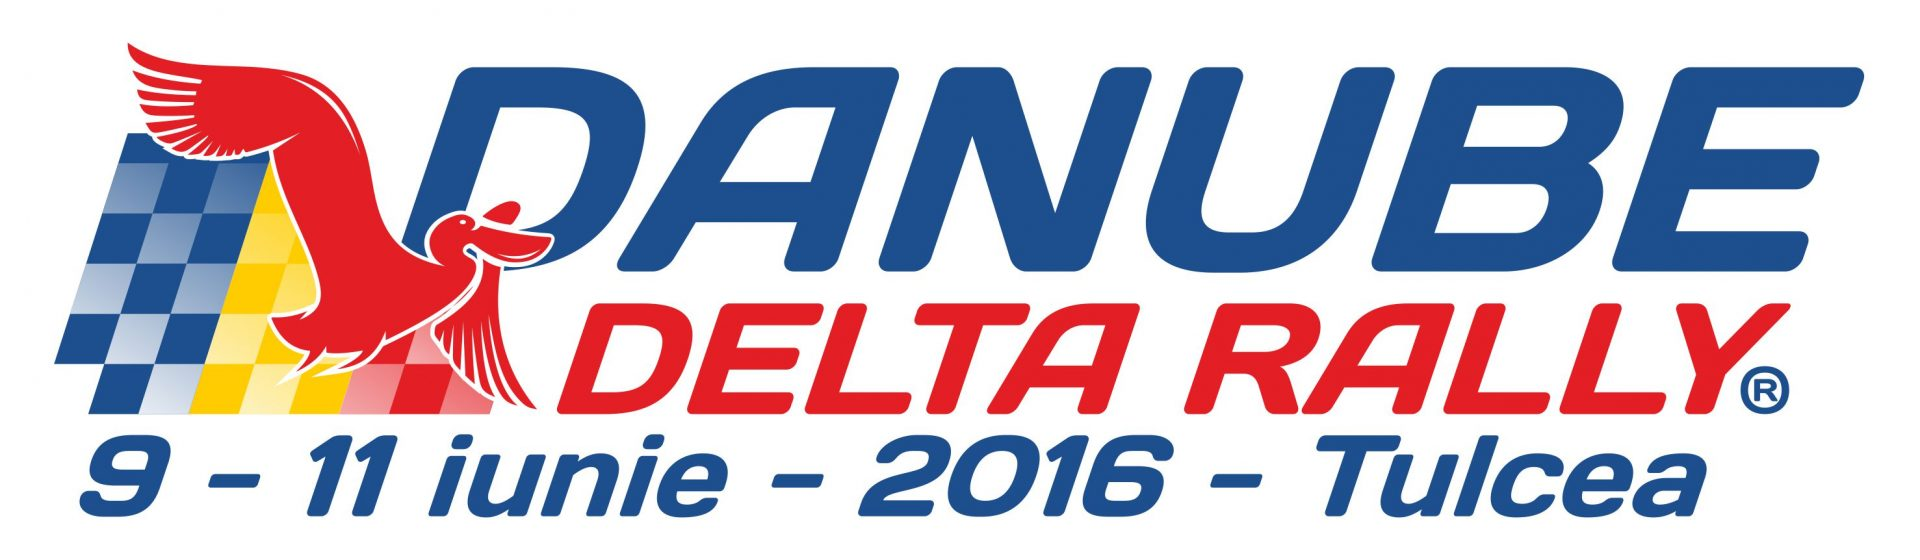 Program inchidere circulatie – Danube Delta Rally® 2016